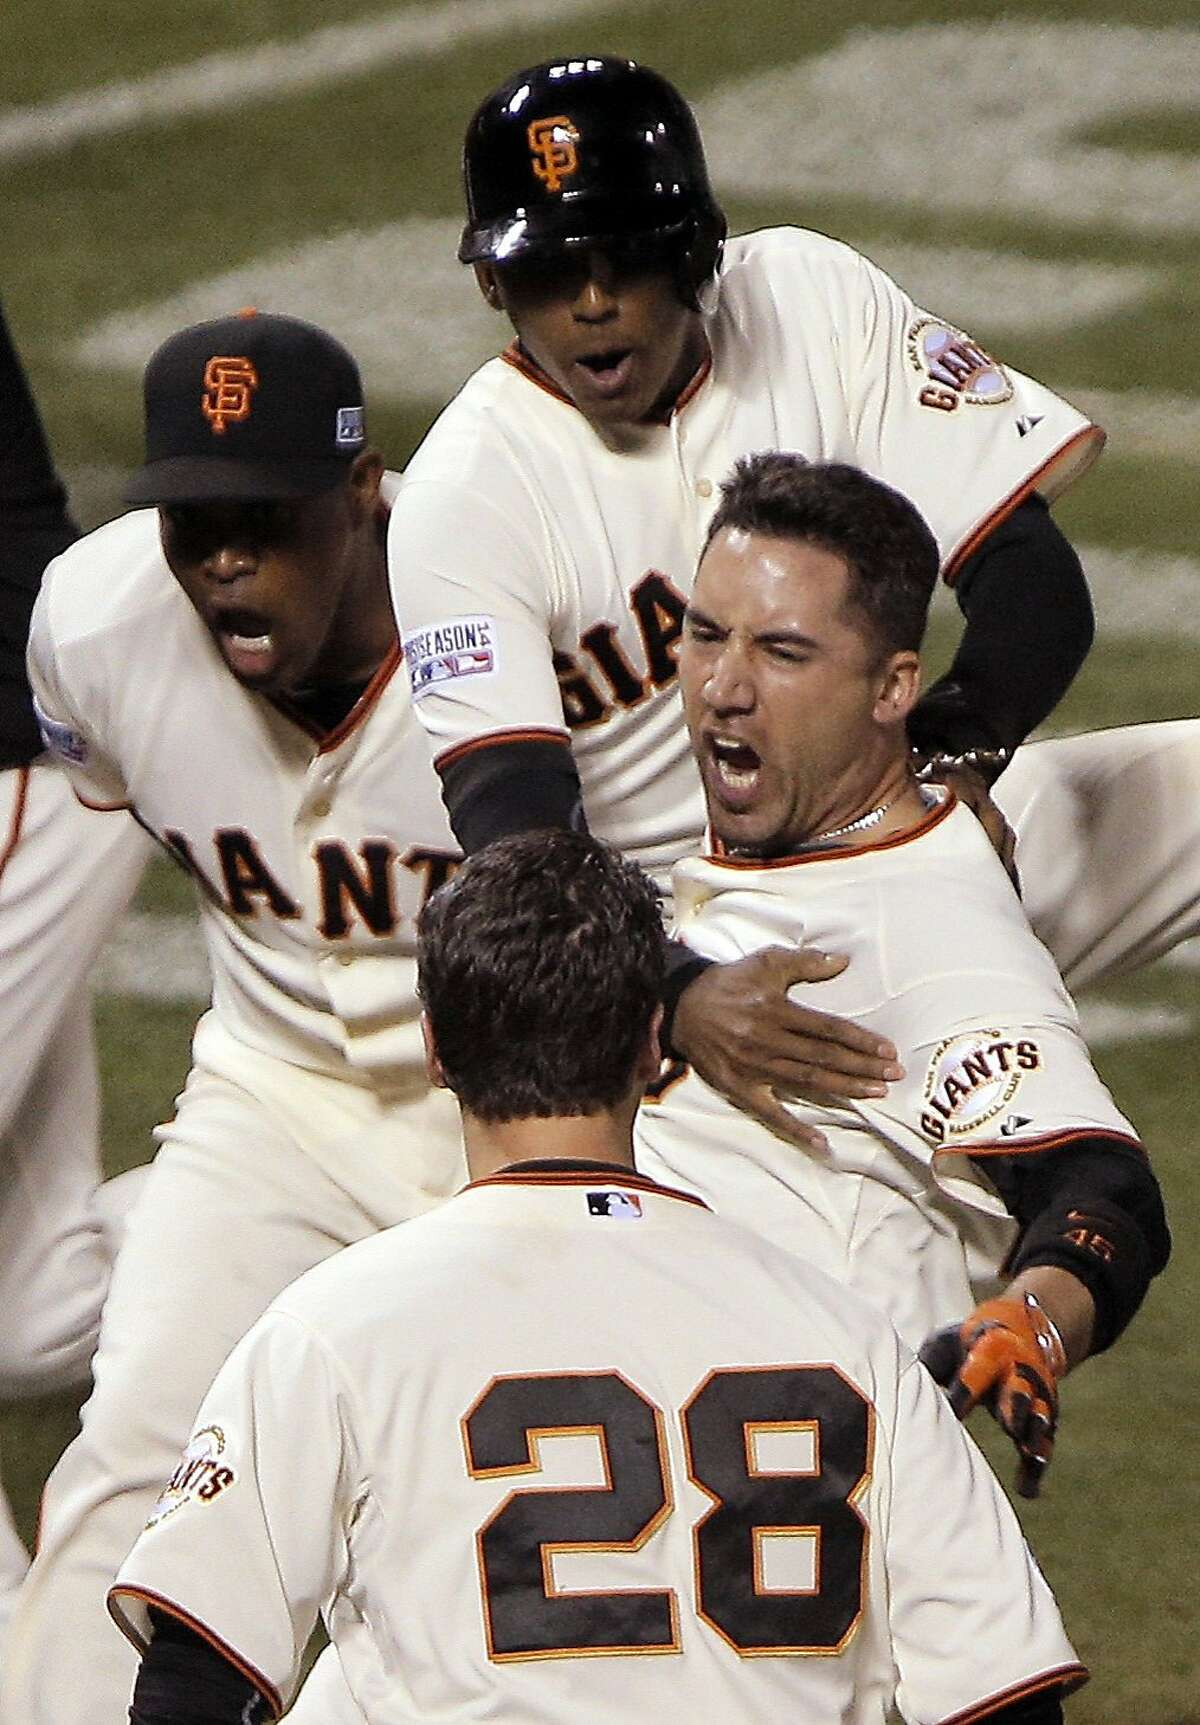 The SF Giants' Travis Ishikawa etched himself in Bay Area sports lore with his walkoff home run that clinched the Giants' spot in the World Series. But what were some of the other biggest sports moments in Bay Area history? We've collected a few favorites here, but let us know your favorites in the comments below.